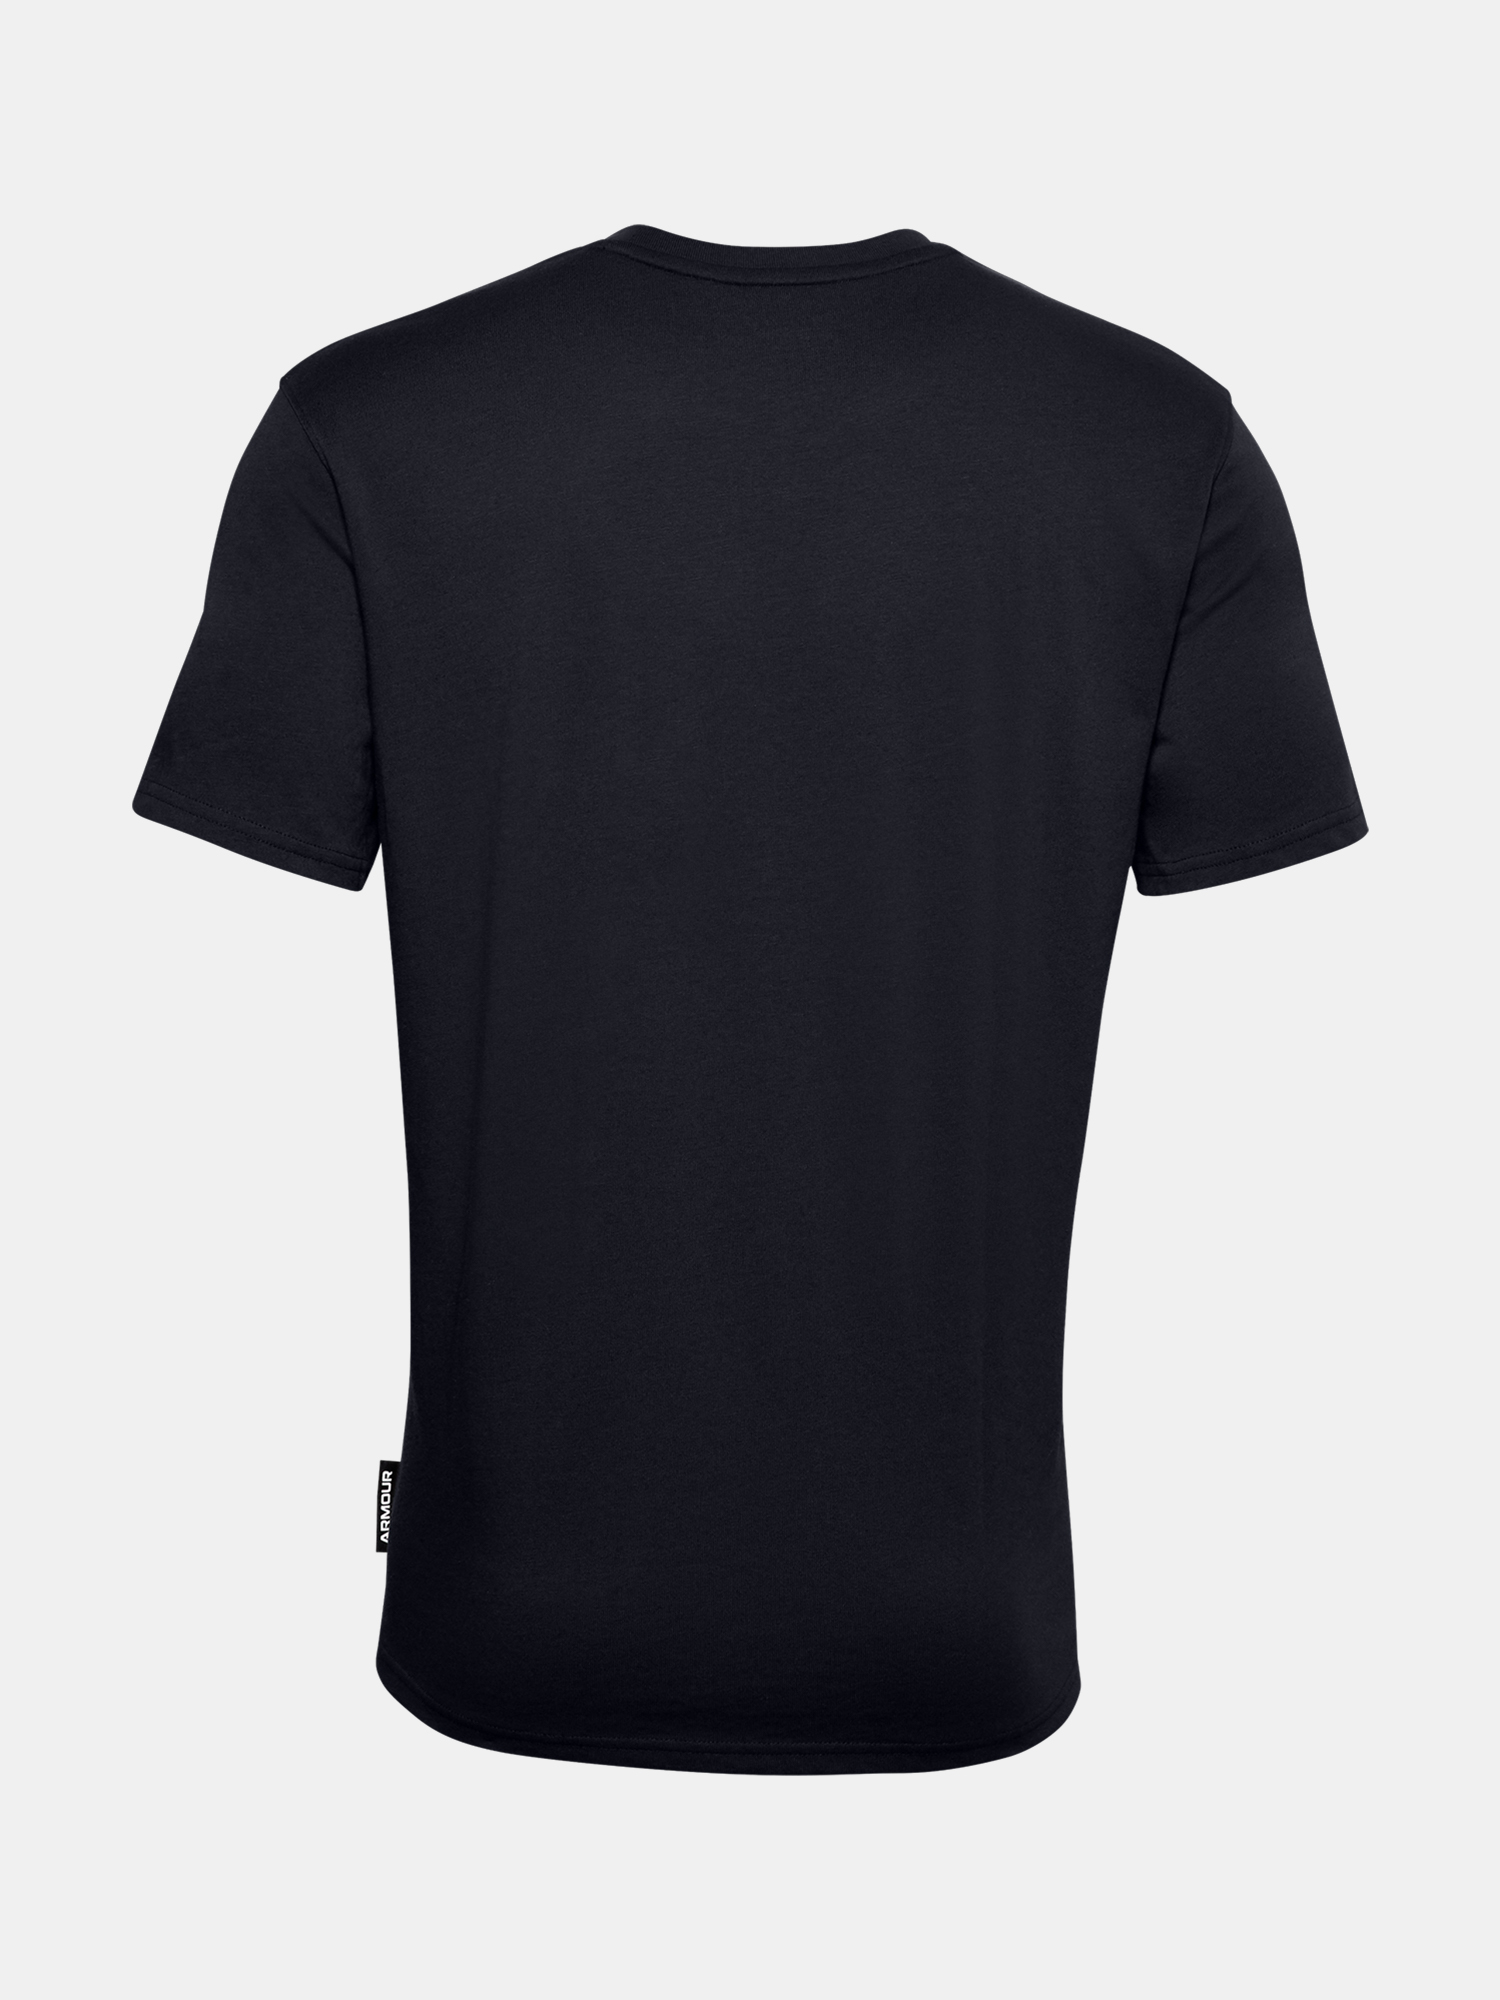 Tričko Under Armour CURRY EMBROIDERED TEE-BLK (4)